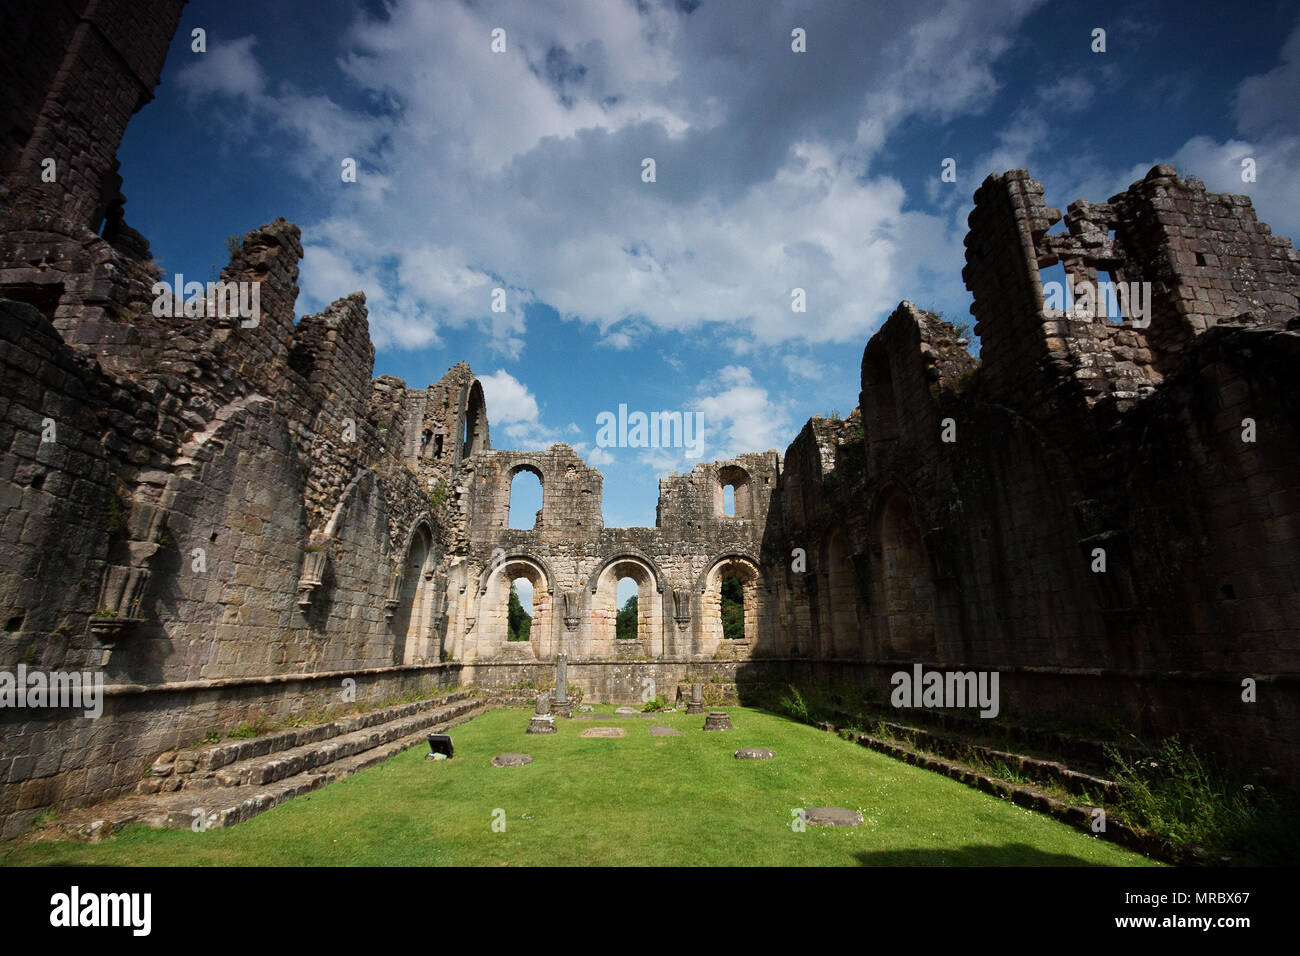 Courtyard-like interior of the monastery ruins in Fountains Abbey, Ripon, UK - Stock Image